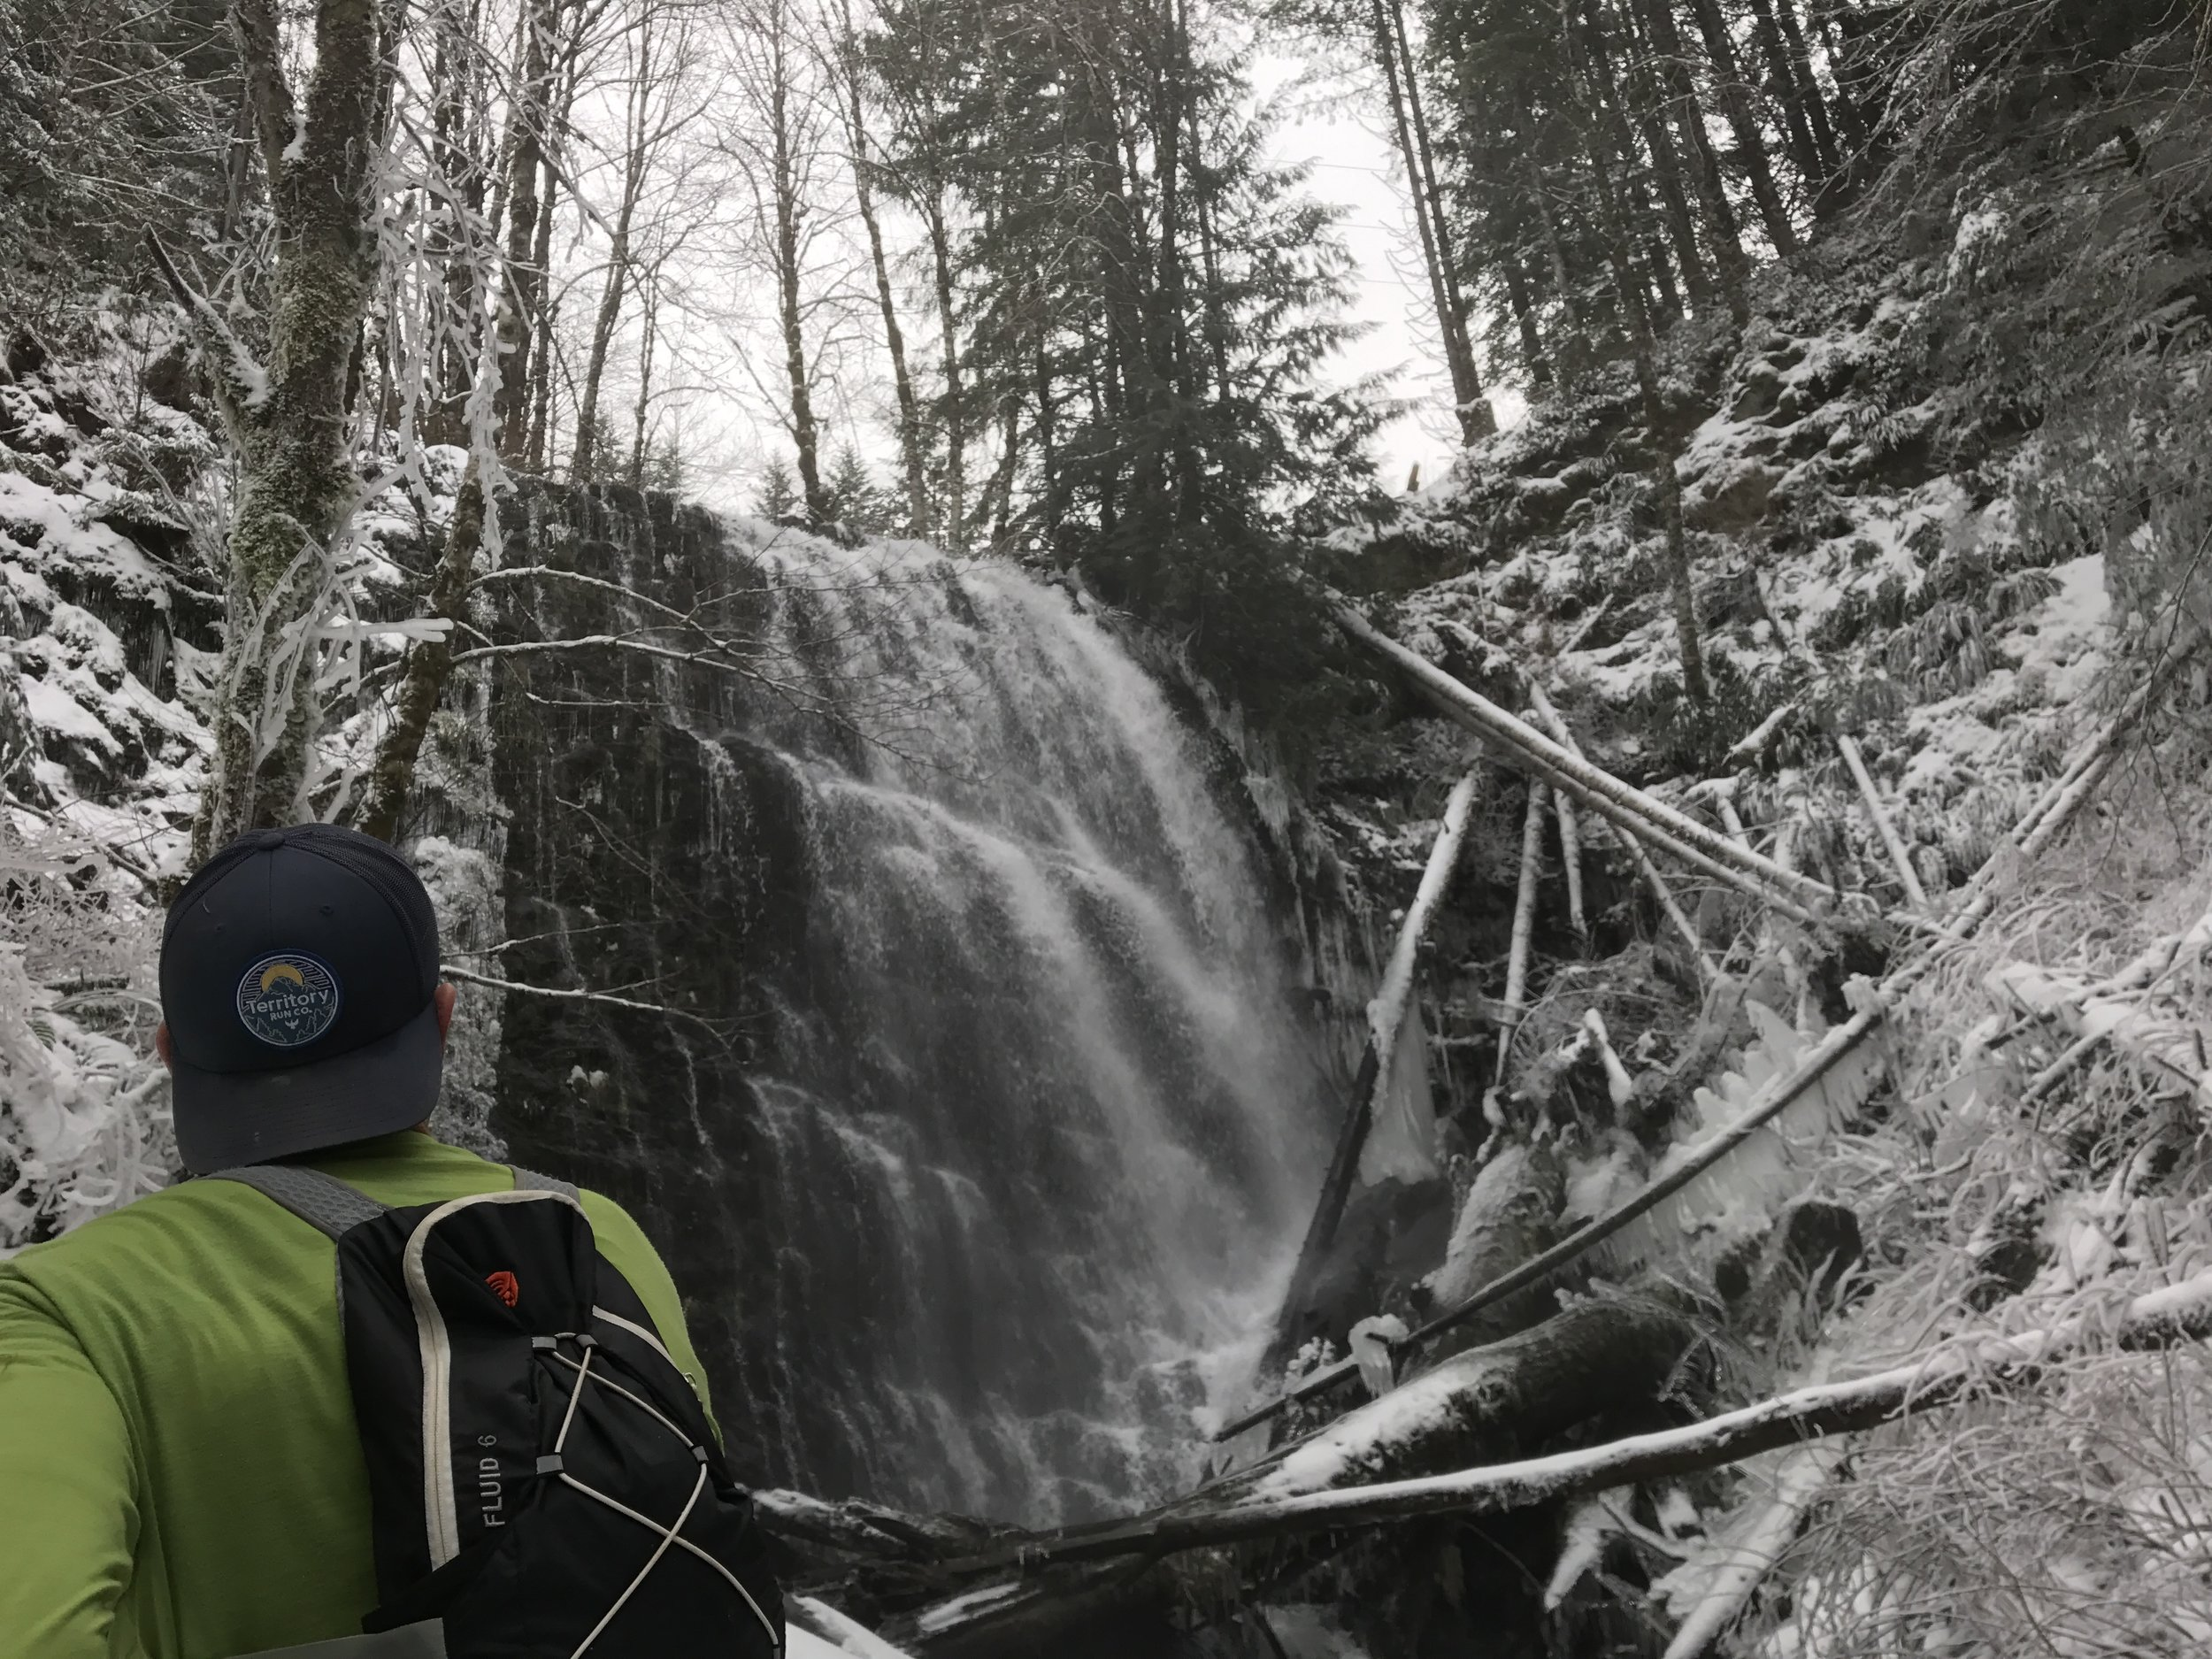 Brian taking in the view at University Falls - Tillamook Forest, Timber, OR